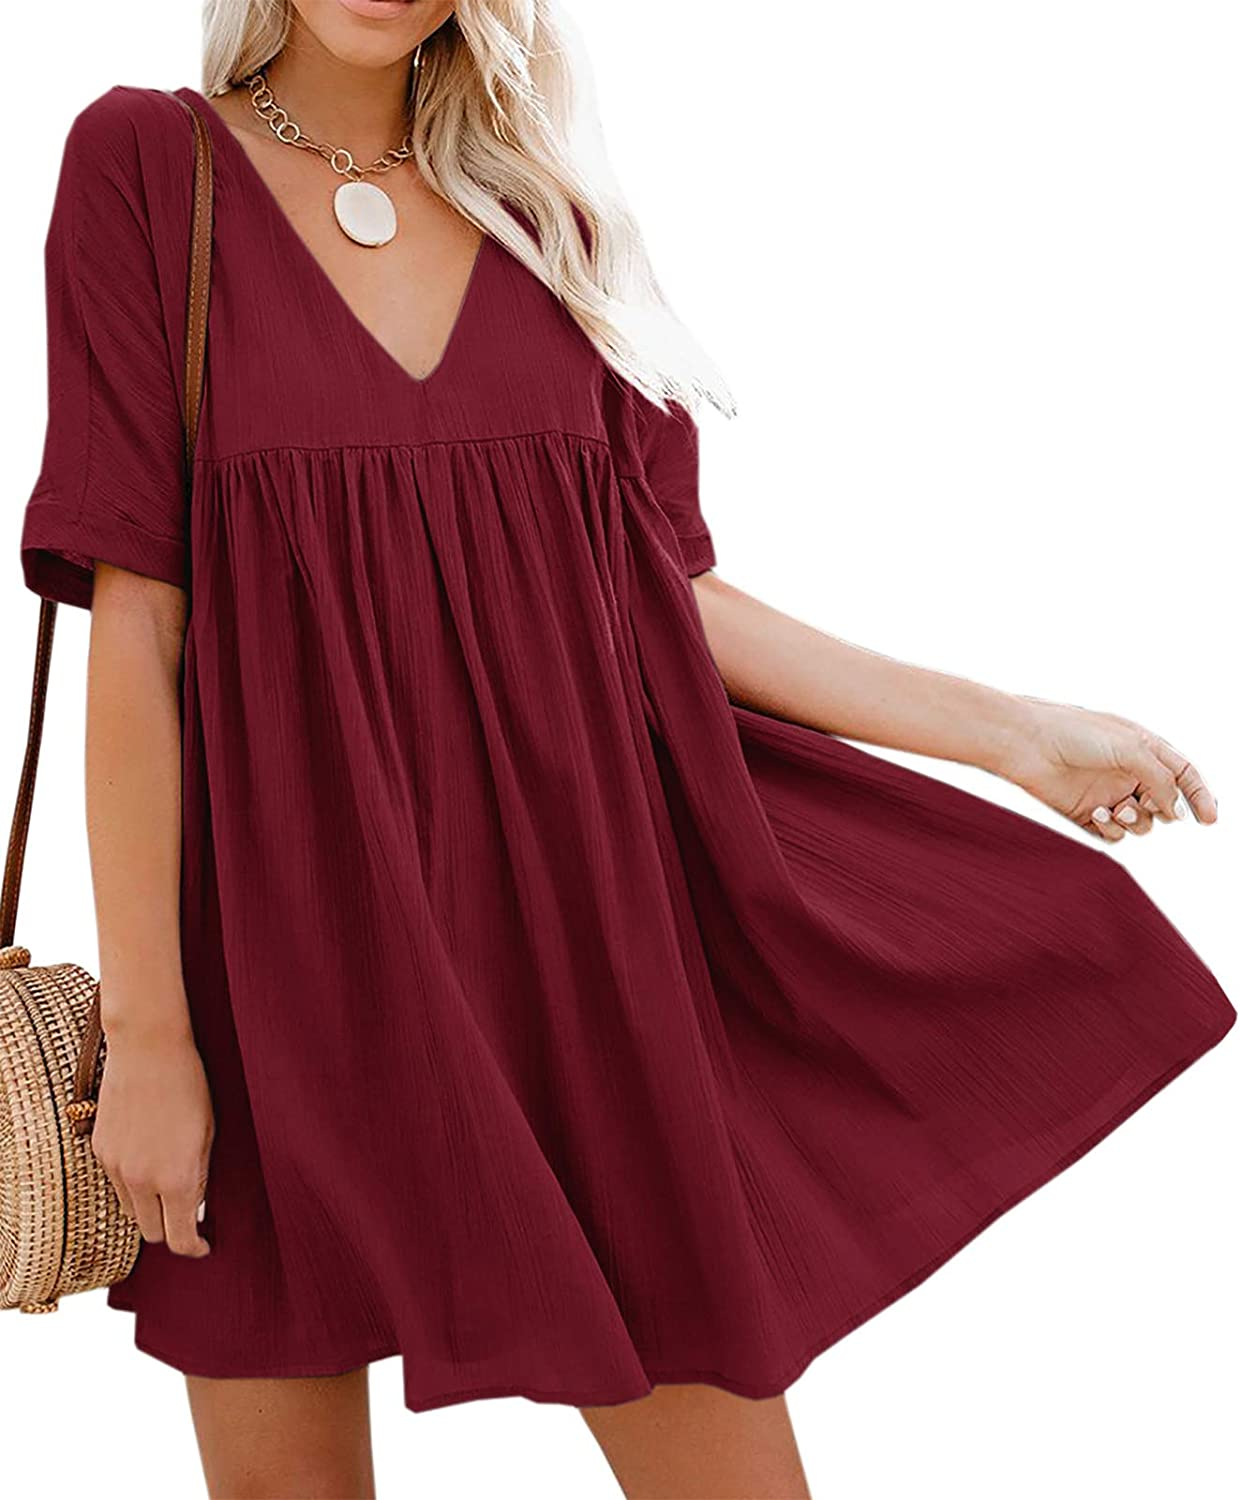 Hestenve Women's Short Sleeve V Neck Pleated Babydoll Solid Color Tunic Party Swing Mini Dress